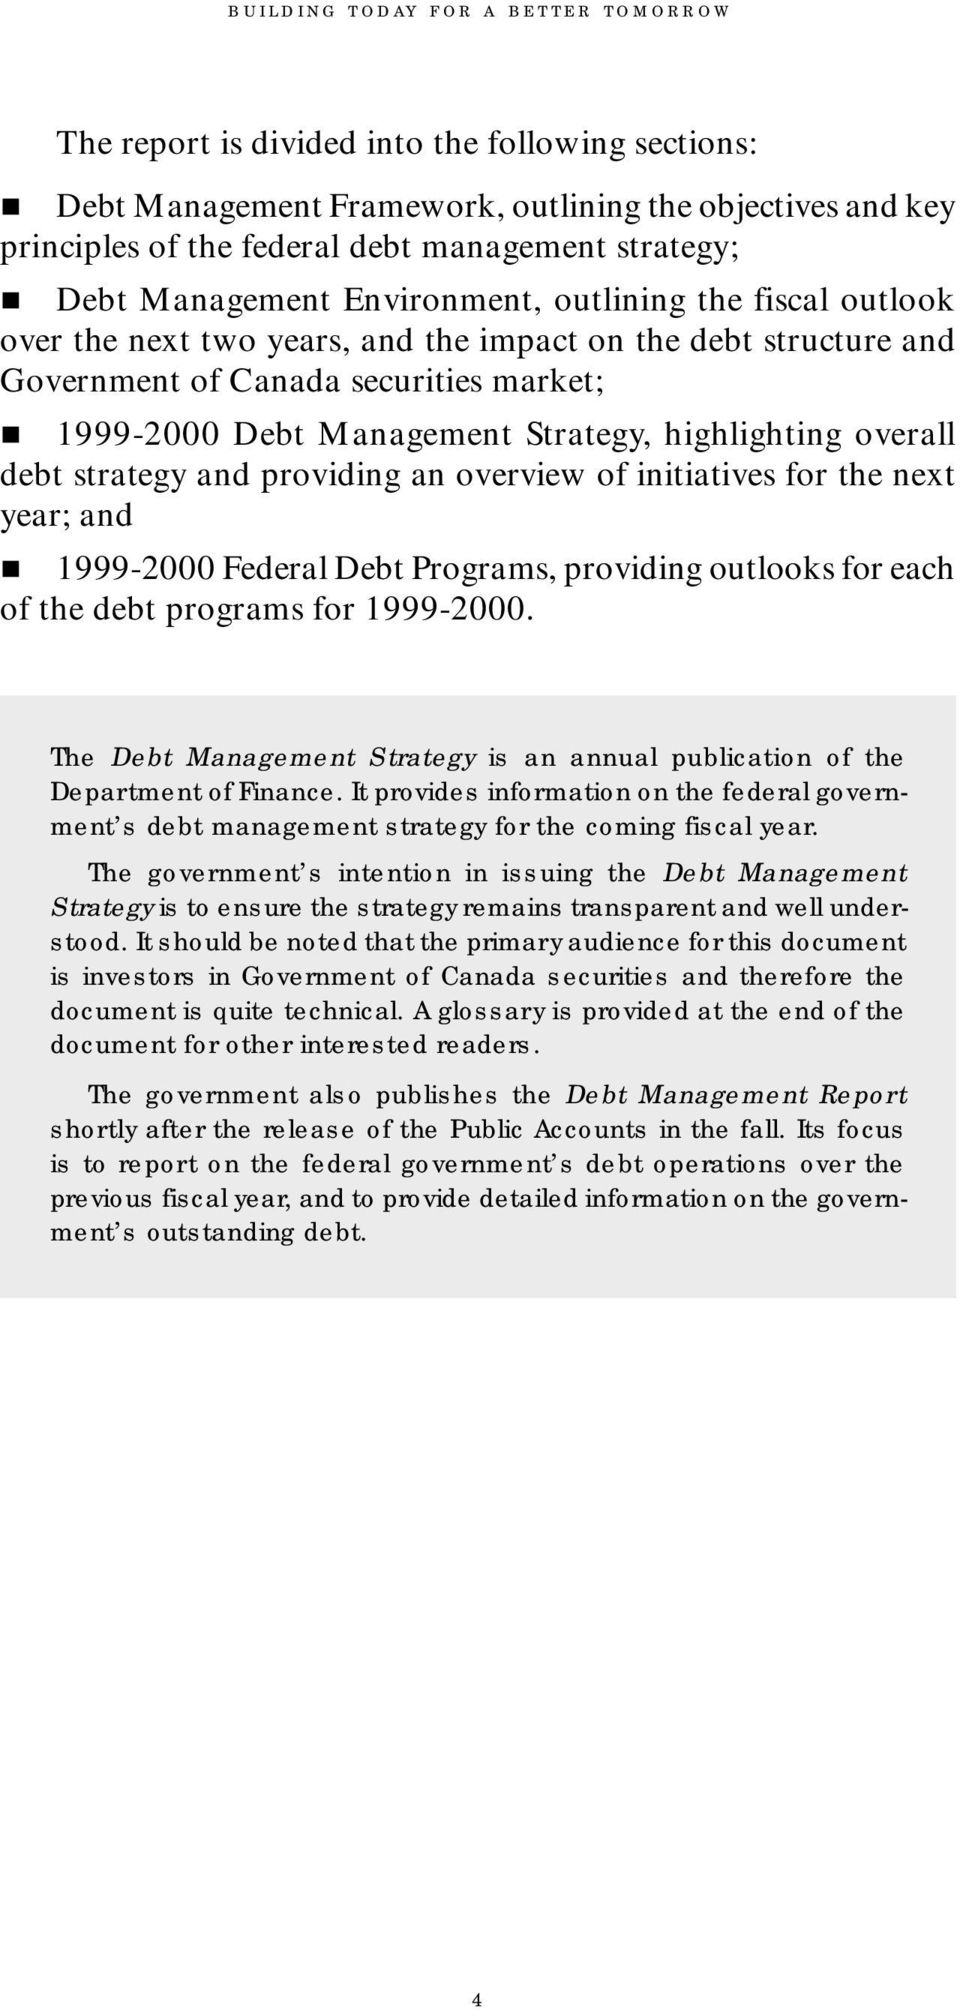 highlighting overall debt strategy and providing an overview of initiatives for the next year; and 1999-2000 Federal Debt Programs, providing outlooks for each of the debt programs for 1999-2000.